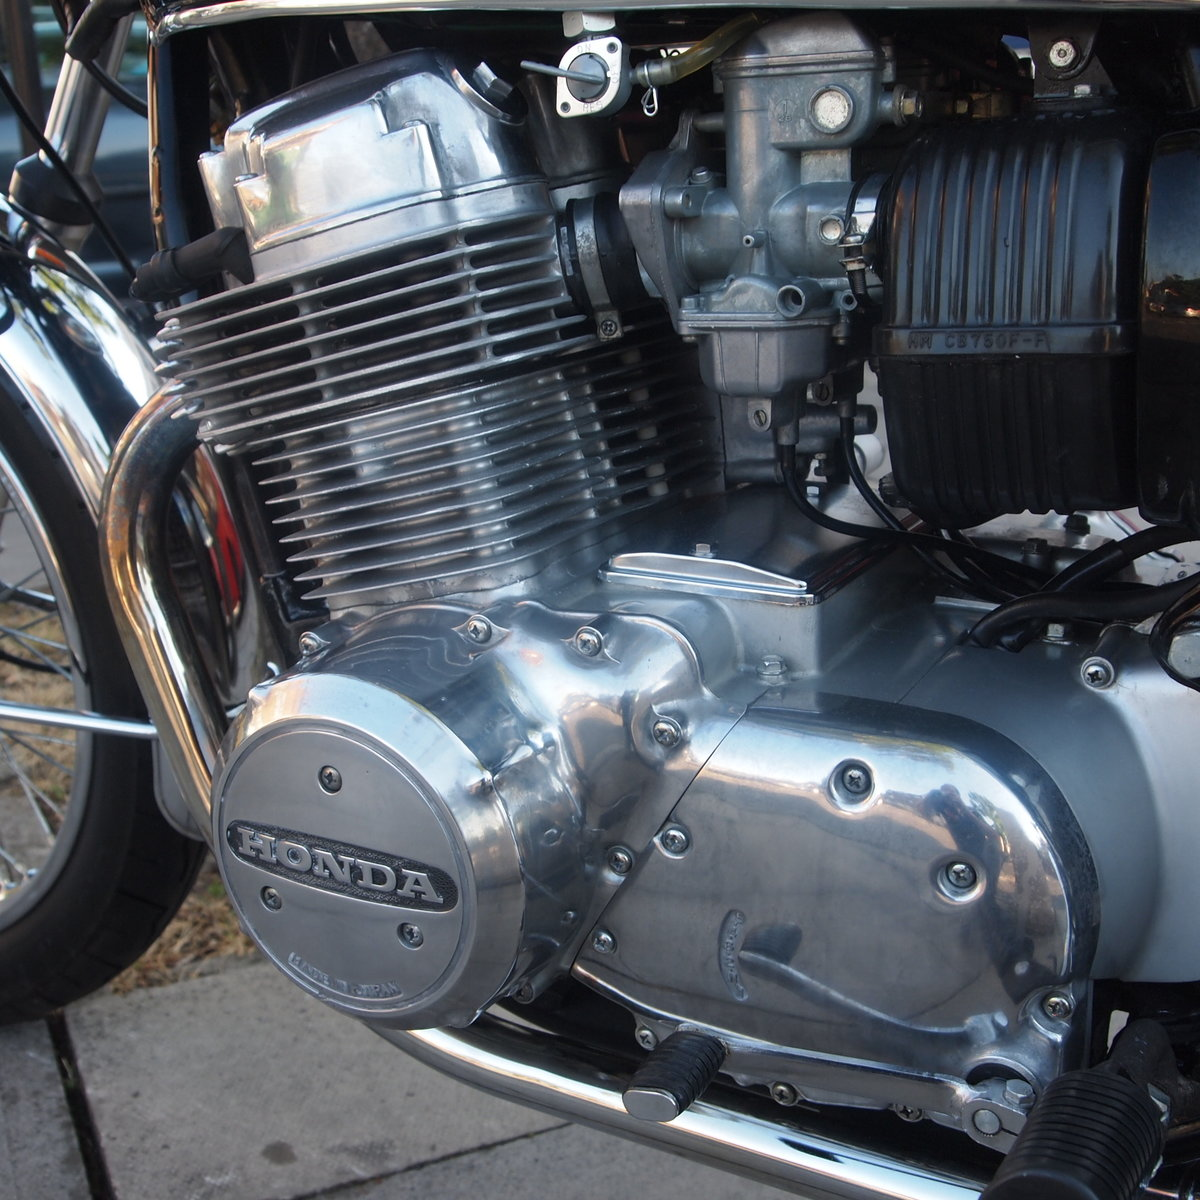 1978 Honda CB750 K8 5703 Miles, RESERVED FOR LOUIS & ANTOINETTE. SOLD (picture 3 of 6)